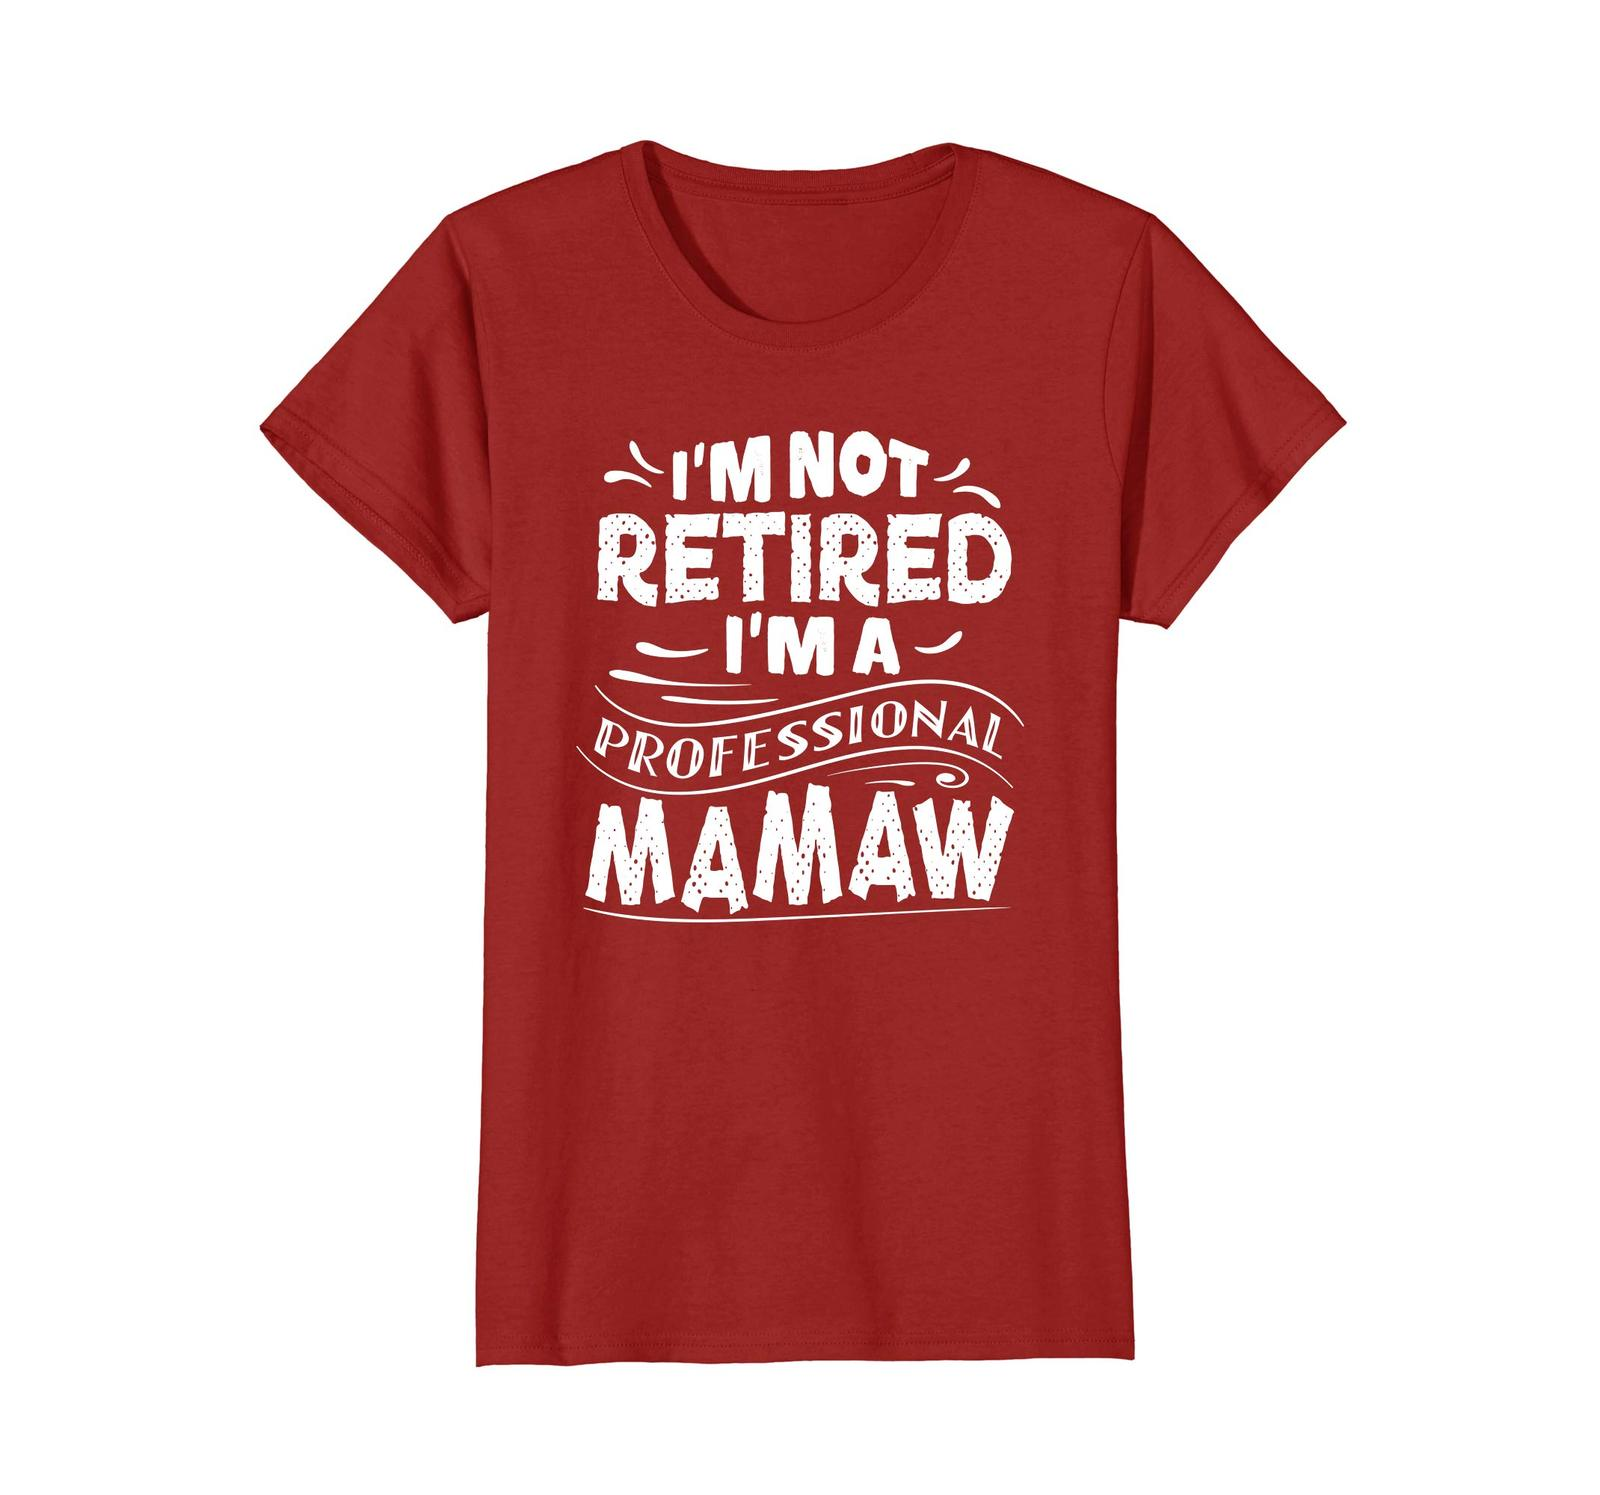 Primary image for Funny Shirts - Not Retired I'm A Professional Mamaw Mother's Day T-shirt Wowen